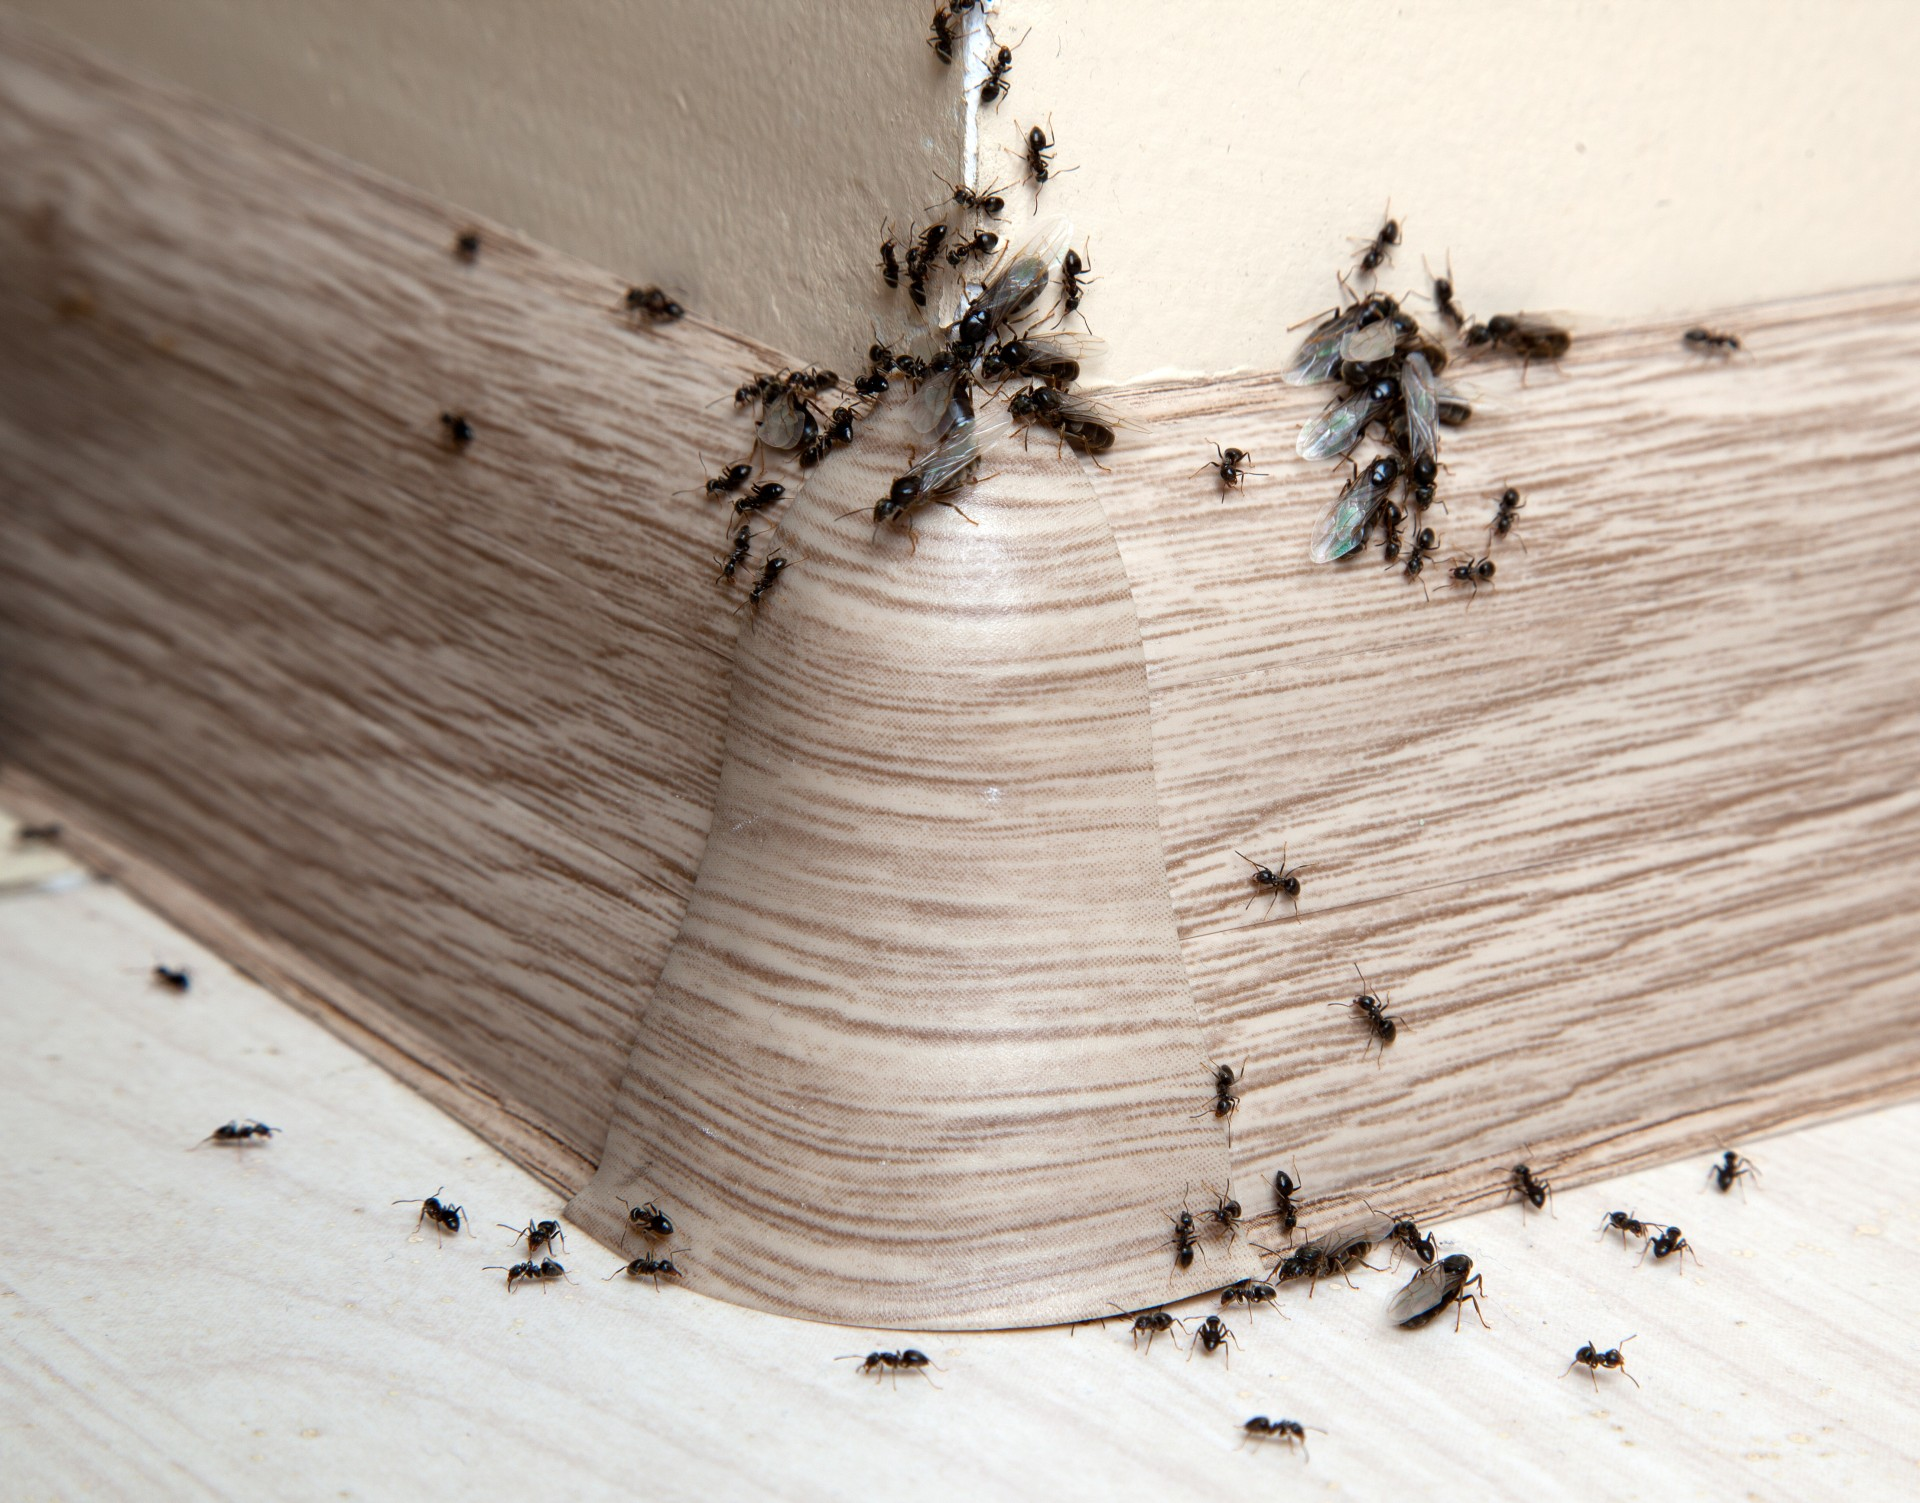 Ant Infestation, Pest Control in West Brompton, World's End, SW10. Call Now 020 8166 9746